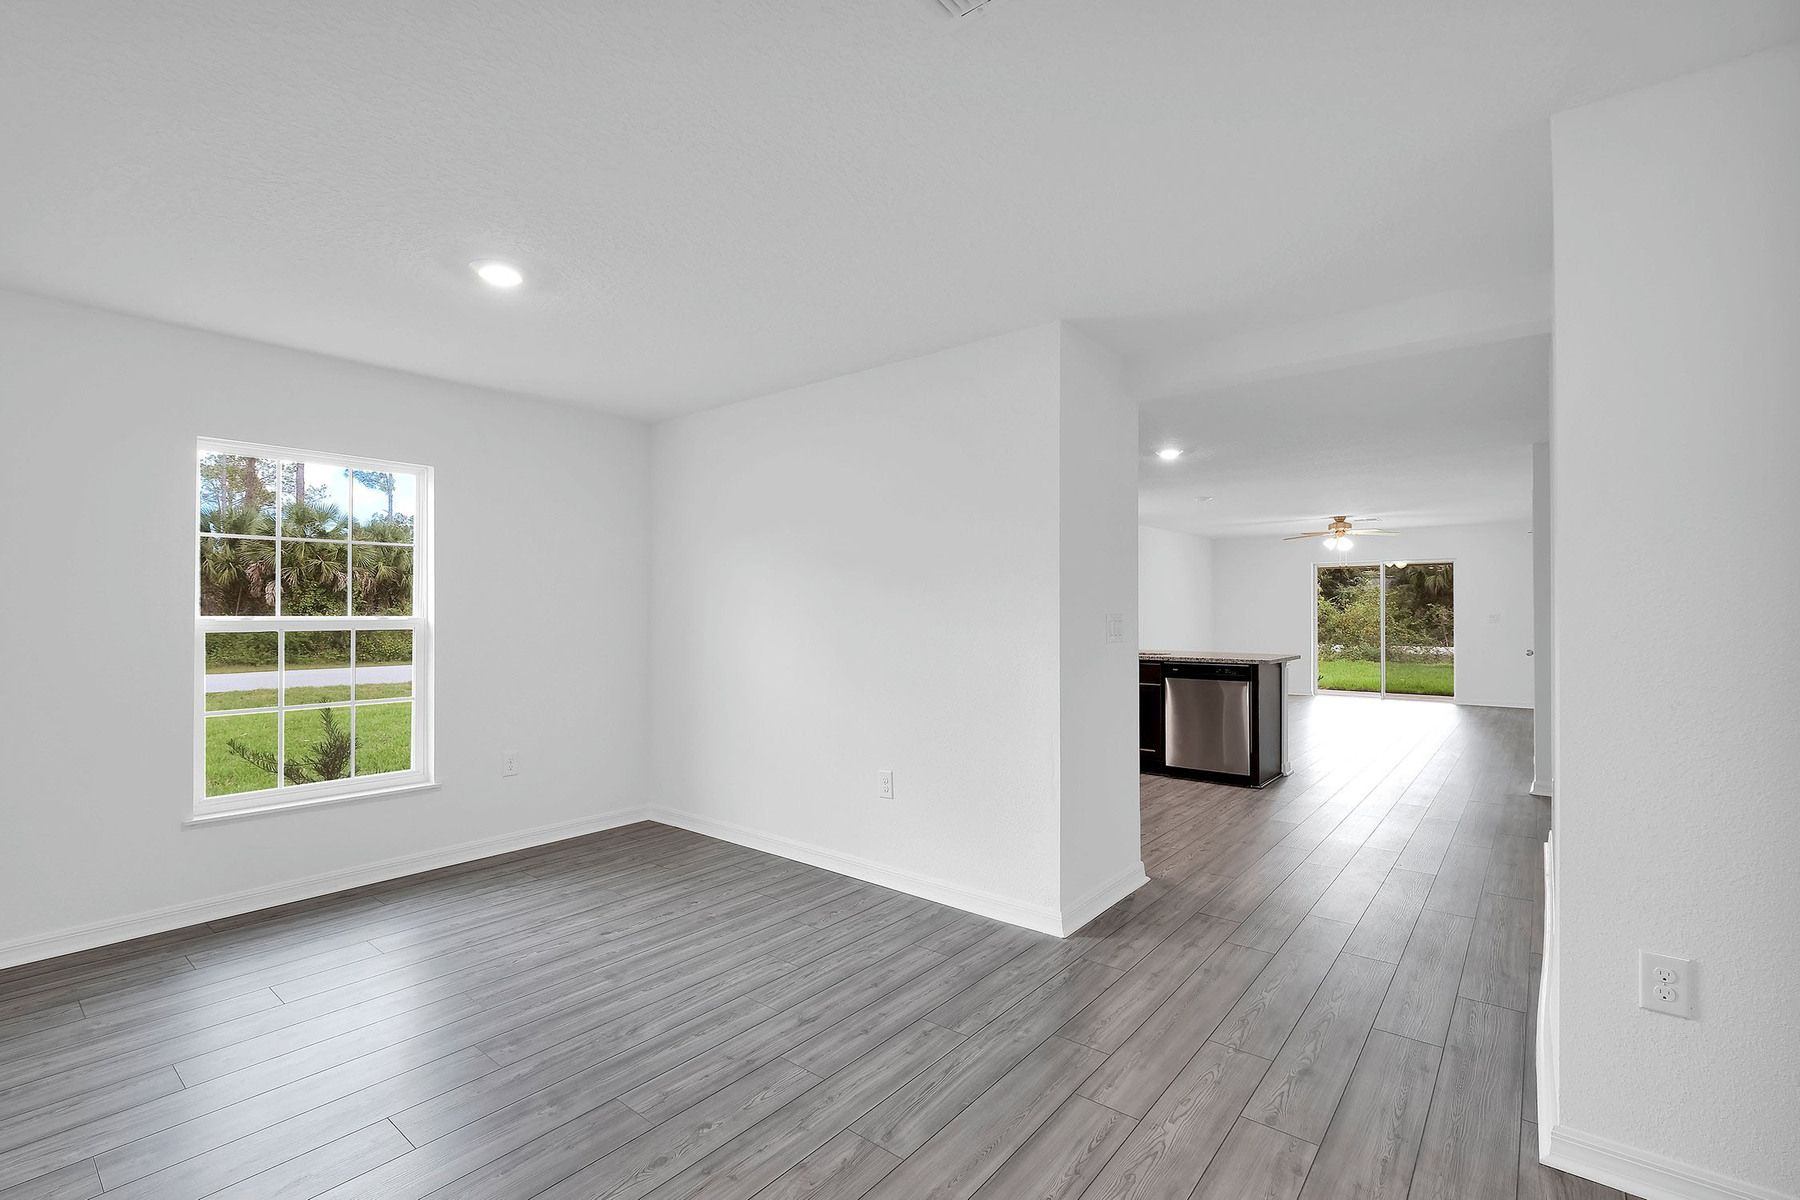 The Estero at Kensington View:Host in style with incredible entertainment space